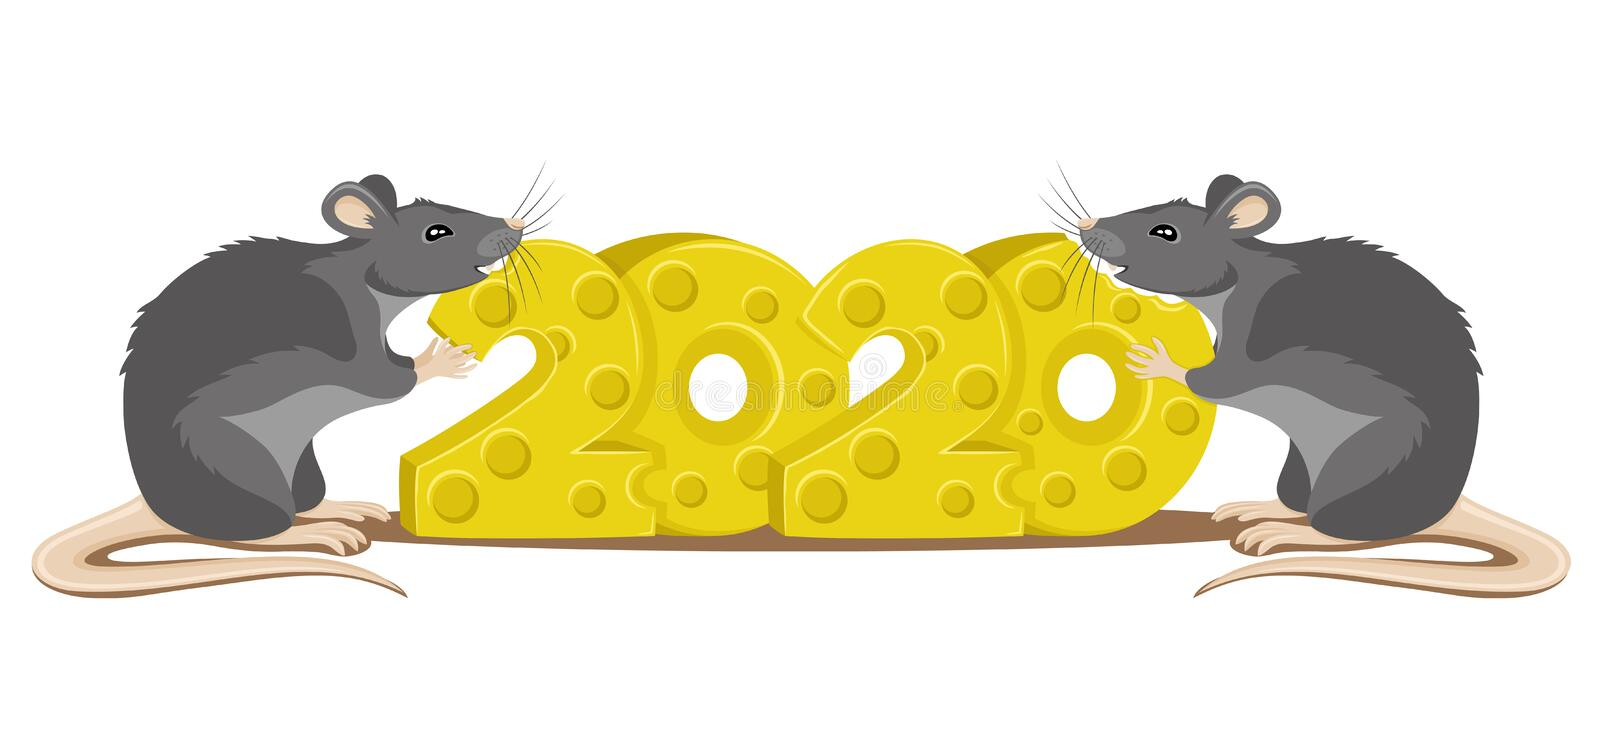 Rat the symbol of the new year 2020. stock illustration